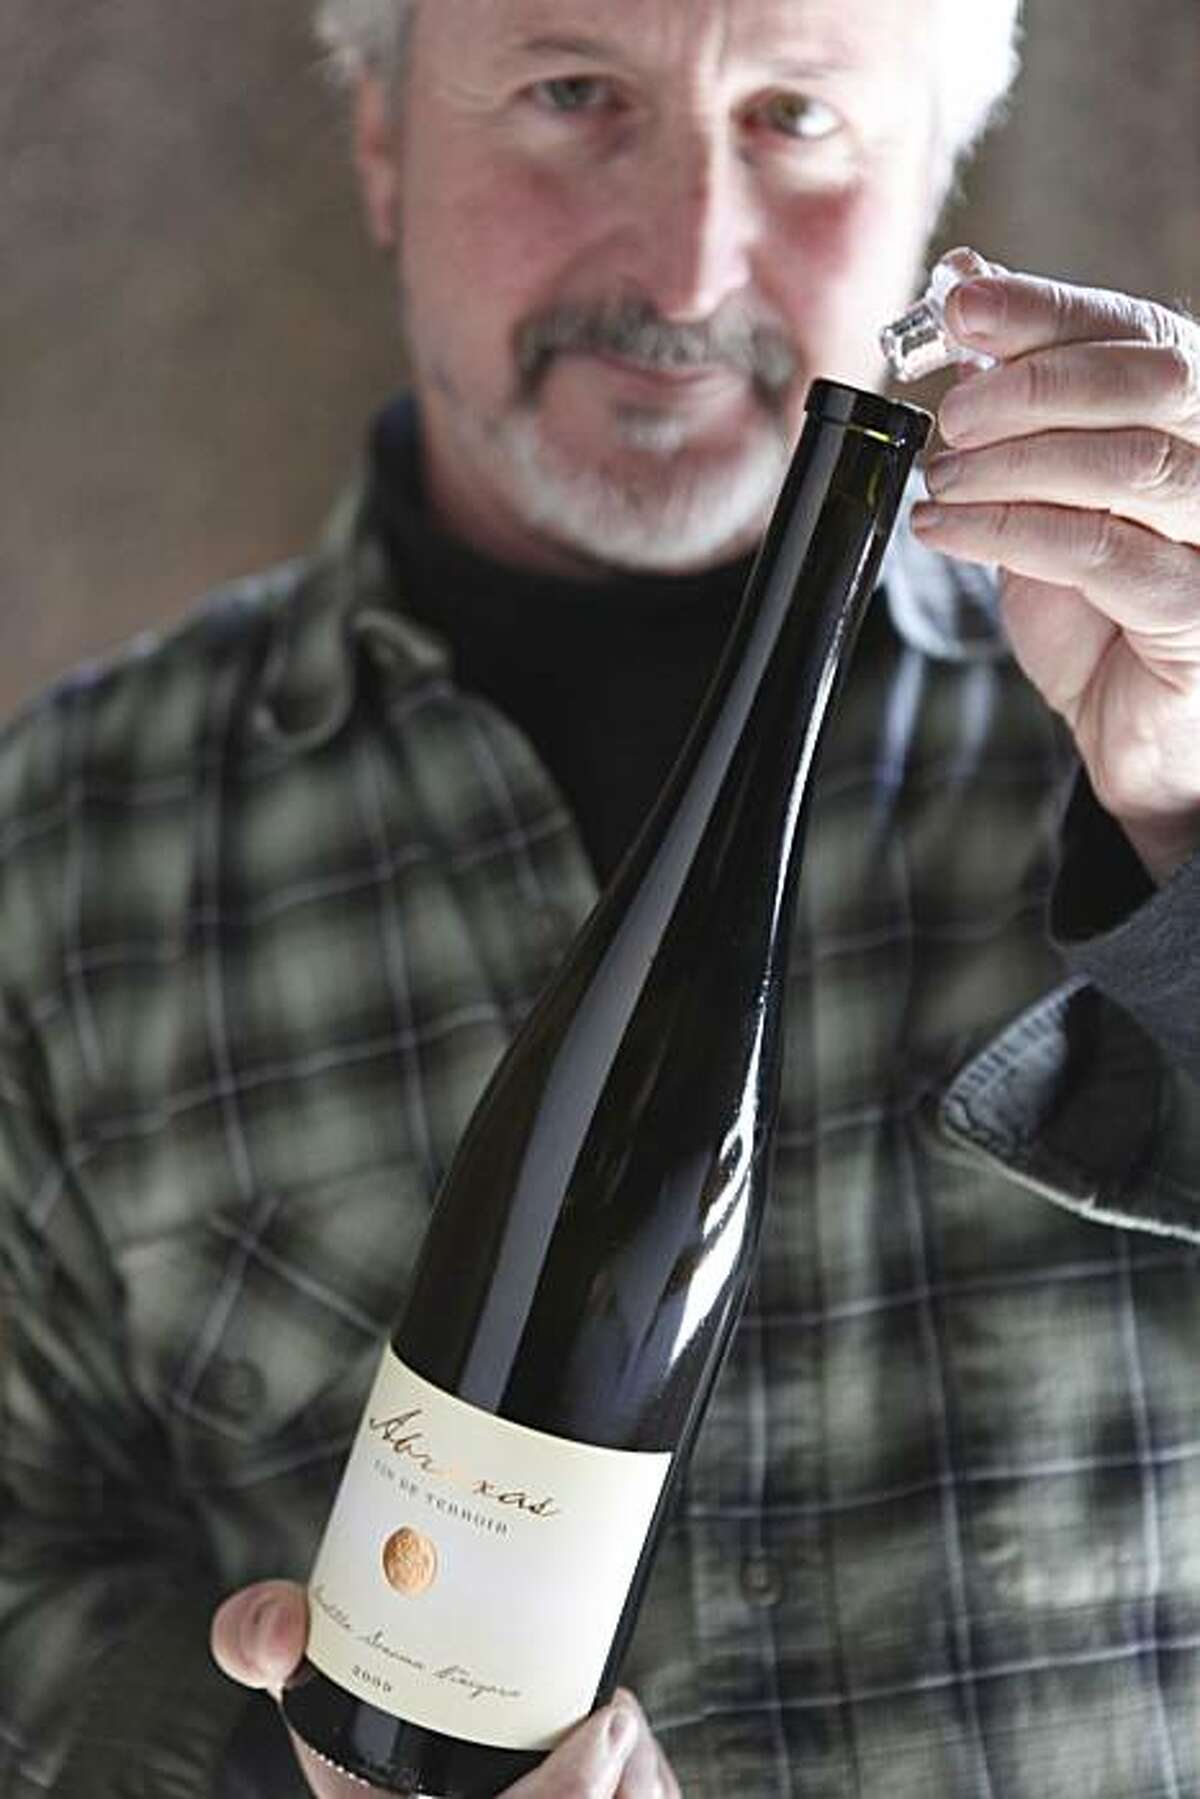 Robert Sinskey, owner and vintner at Robert Sinskey Vineyards demonstrates the simplicity used to opening a Vino-Lok closure, made from glass, instead of a traditional cork on Tuesday March 9, 2010 in Napa, Calif.